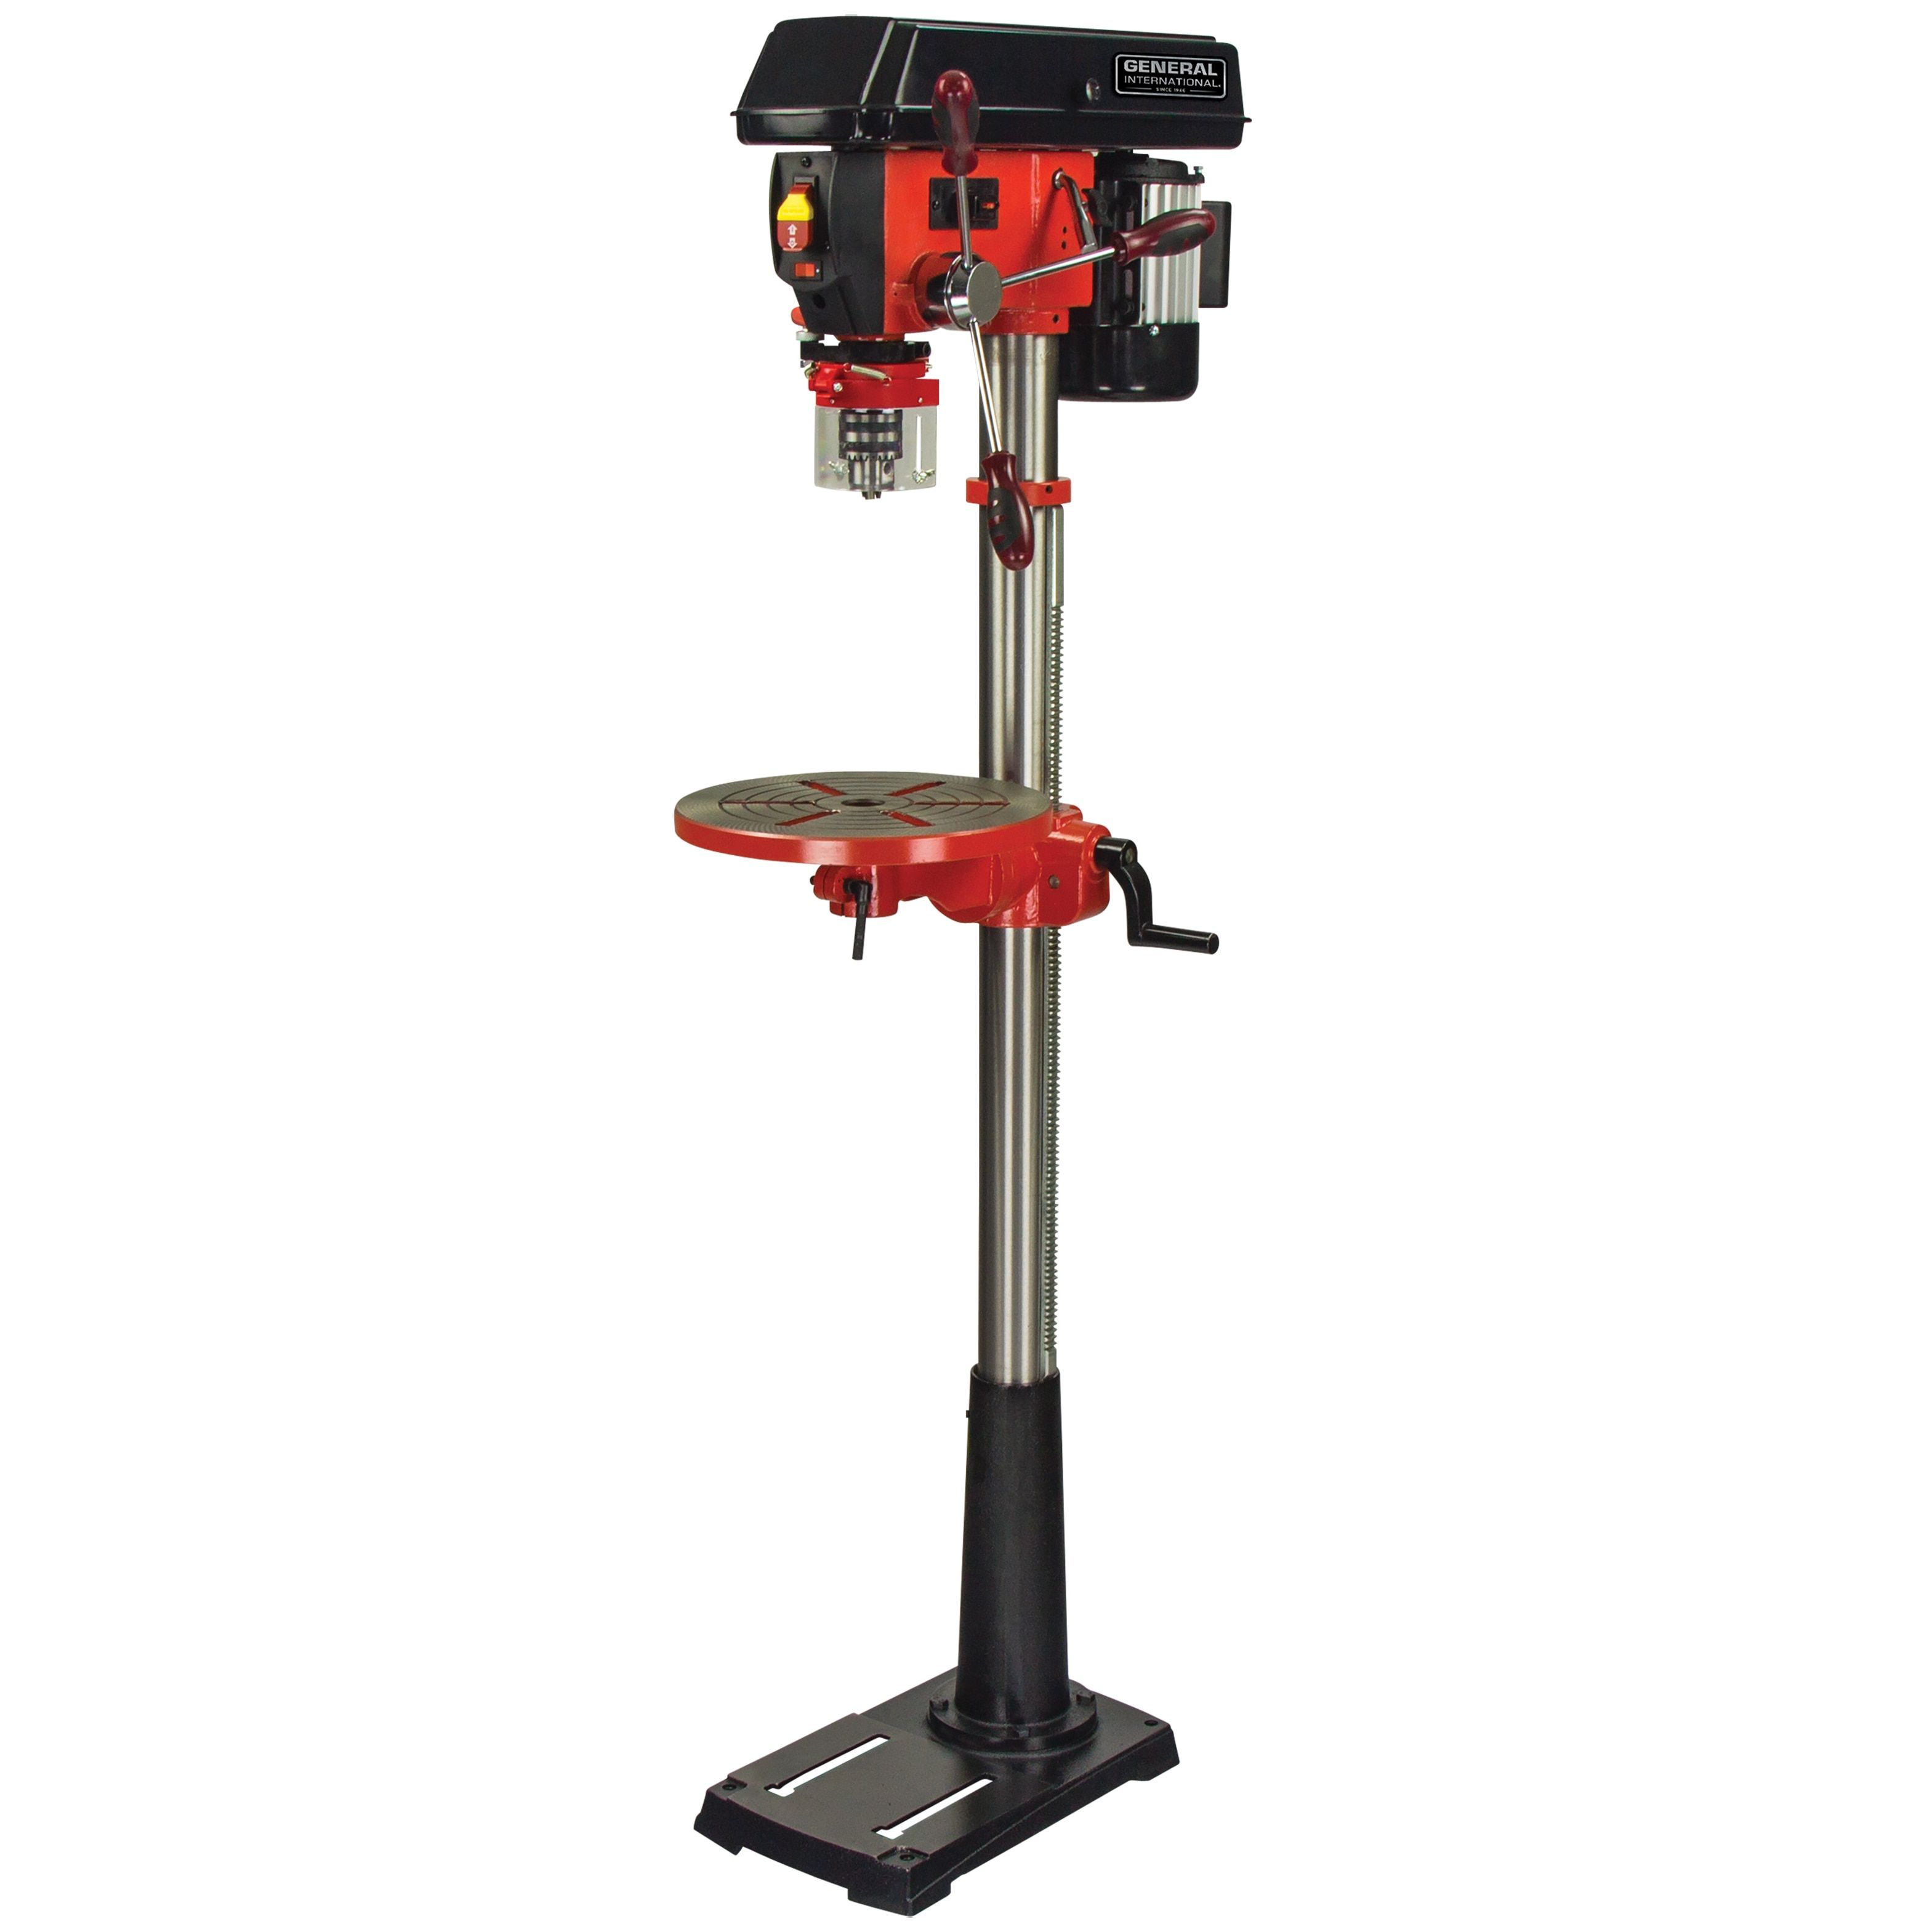 General International 13 Inch 16 Speed Drill Press With Patented Cross Pattern Laser System Led Lighting Stationary Tools Red Products In 2019 Speed